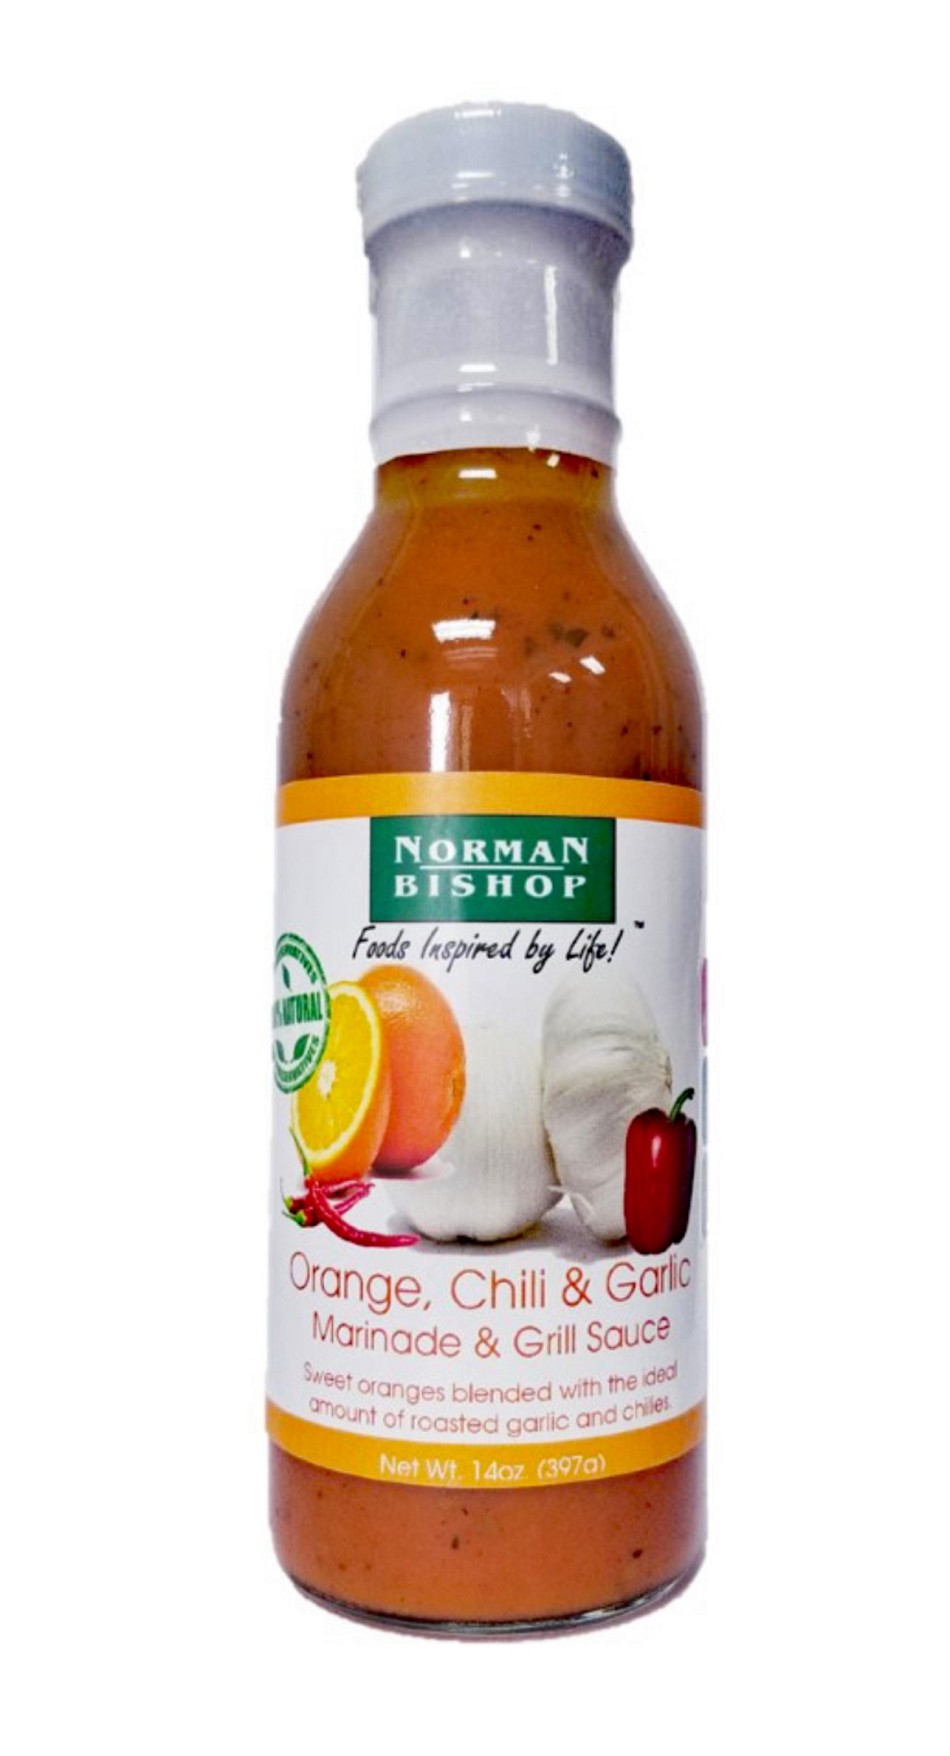 Orange Chili & Garlic Grill Sauce & Marinade  (CASE)